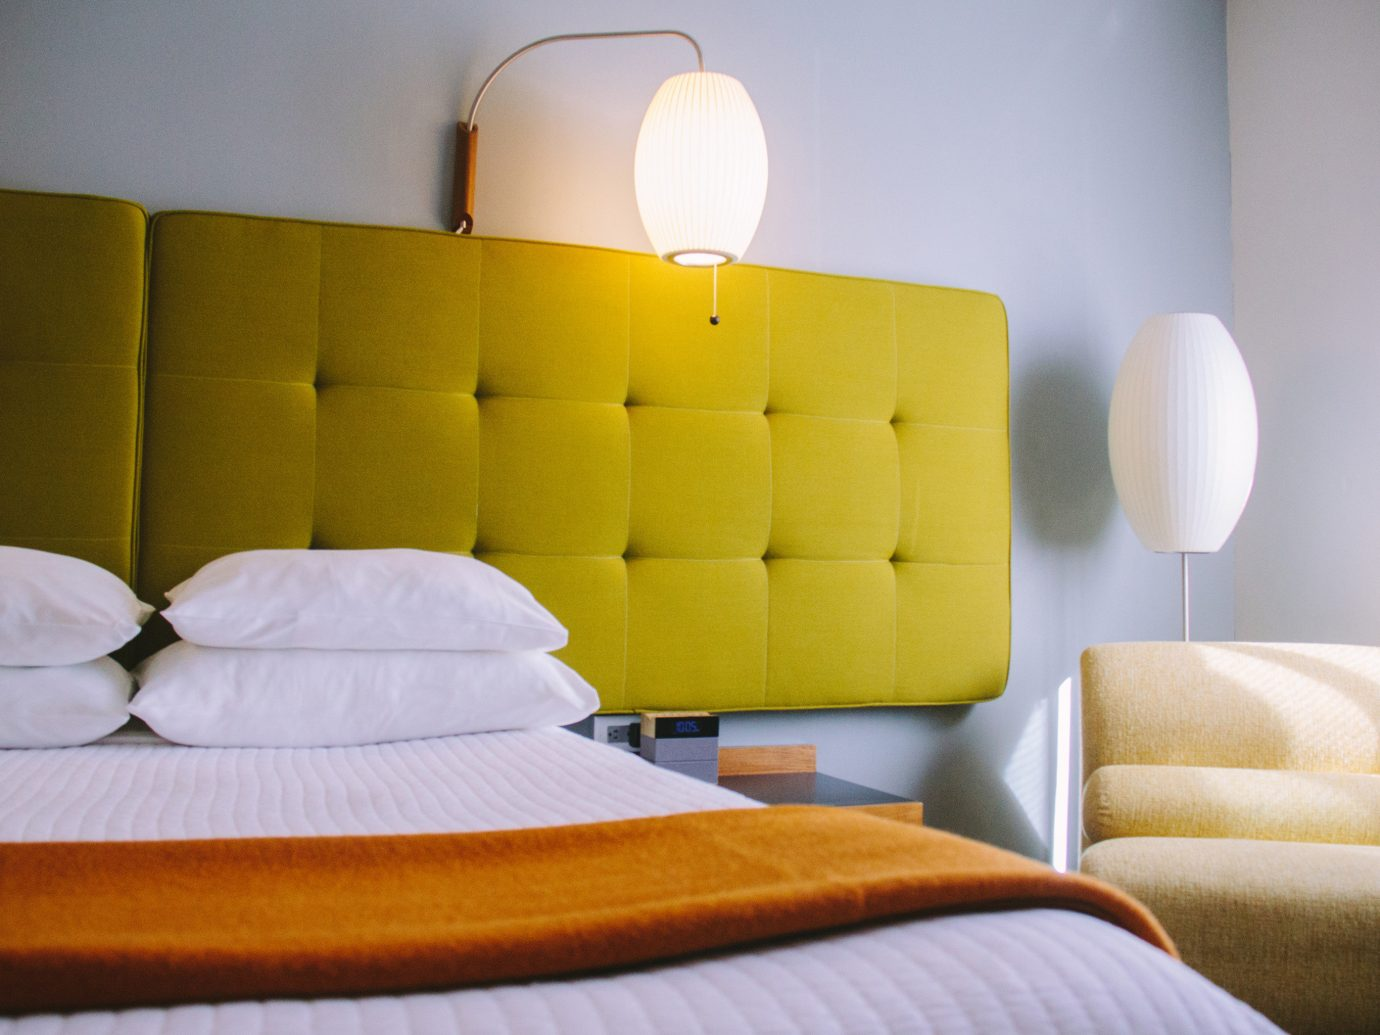 Boutique Hotels Fall Travel Trip Ideas Weekend Getaways indoor wall yellow furniture room couch interior design bed bed frame Bedroom Suite lighting ceiling product design home comfort bed sheet table sofa bed living room product angle mattress floor hotel sofa